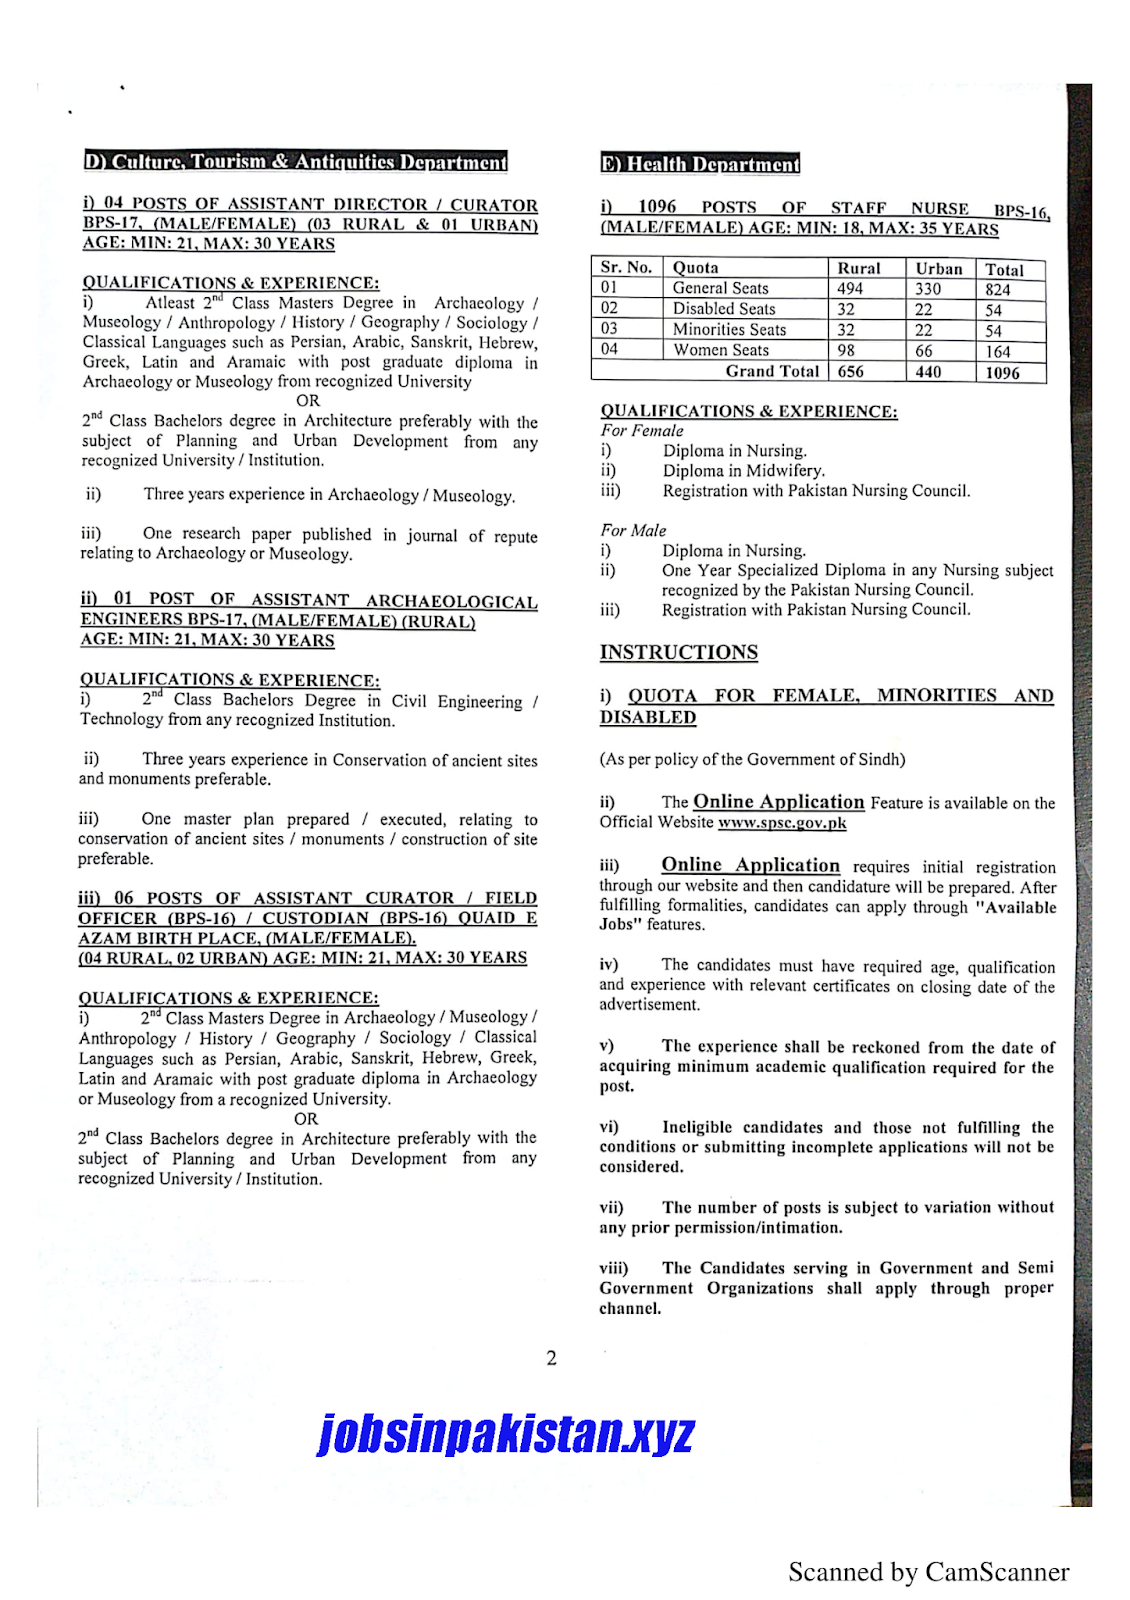 SPSC Advertisement 11/2018 Page No. 2/3